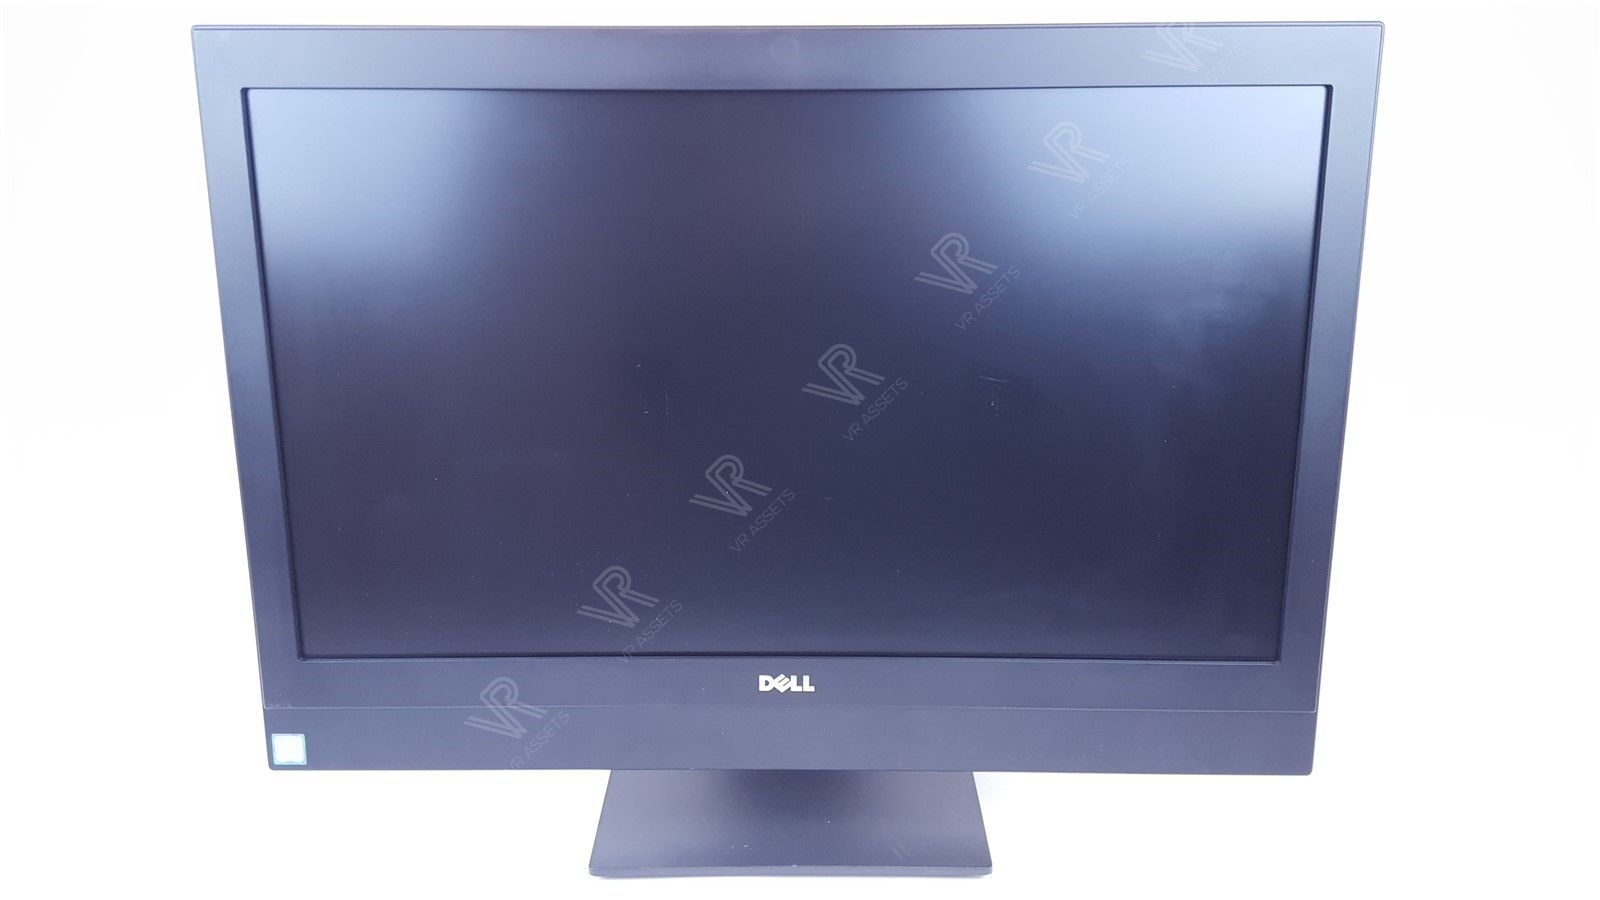 Dell 7450 – Wonderful Image Gallery